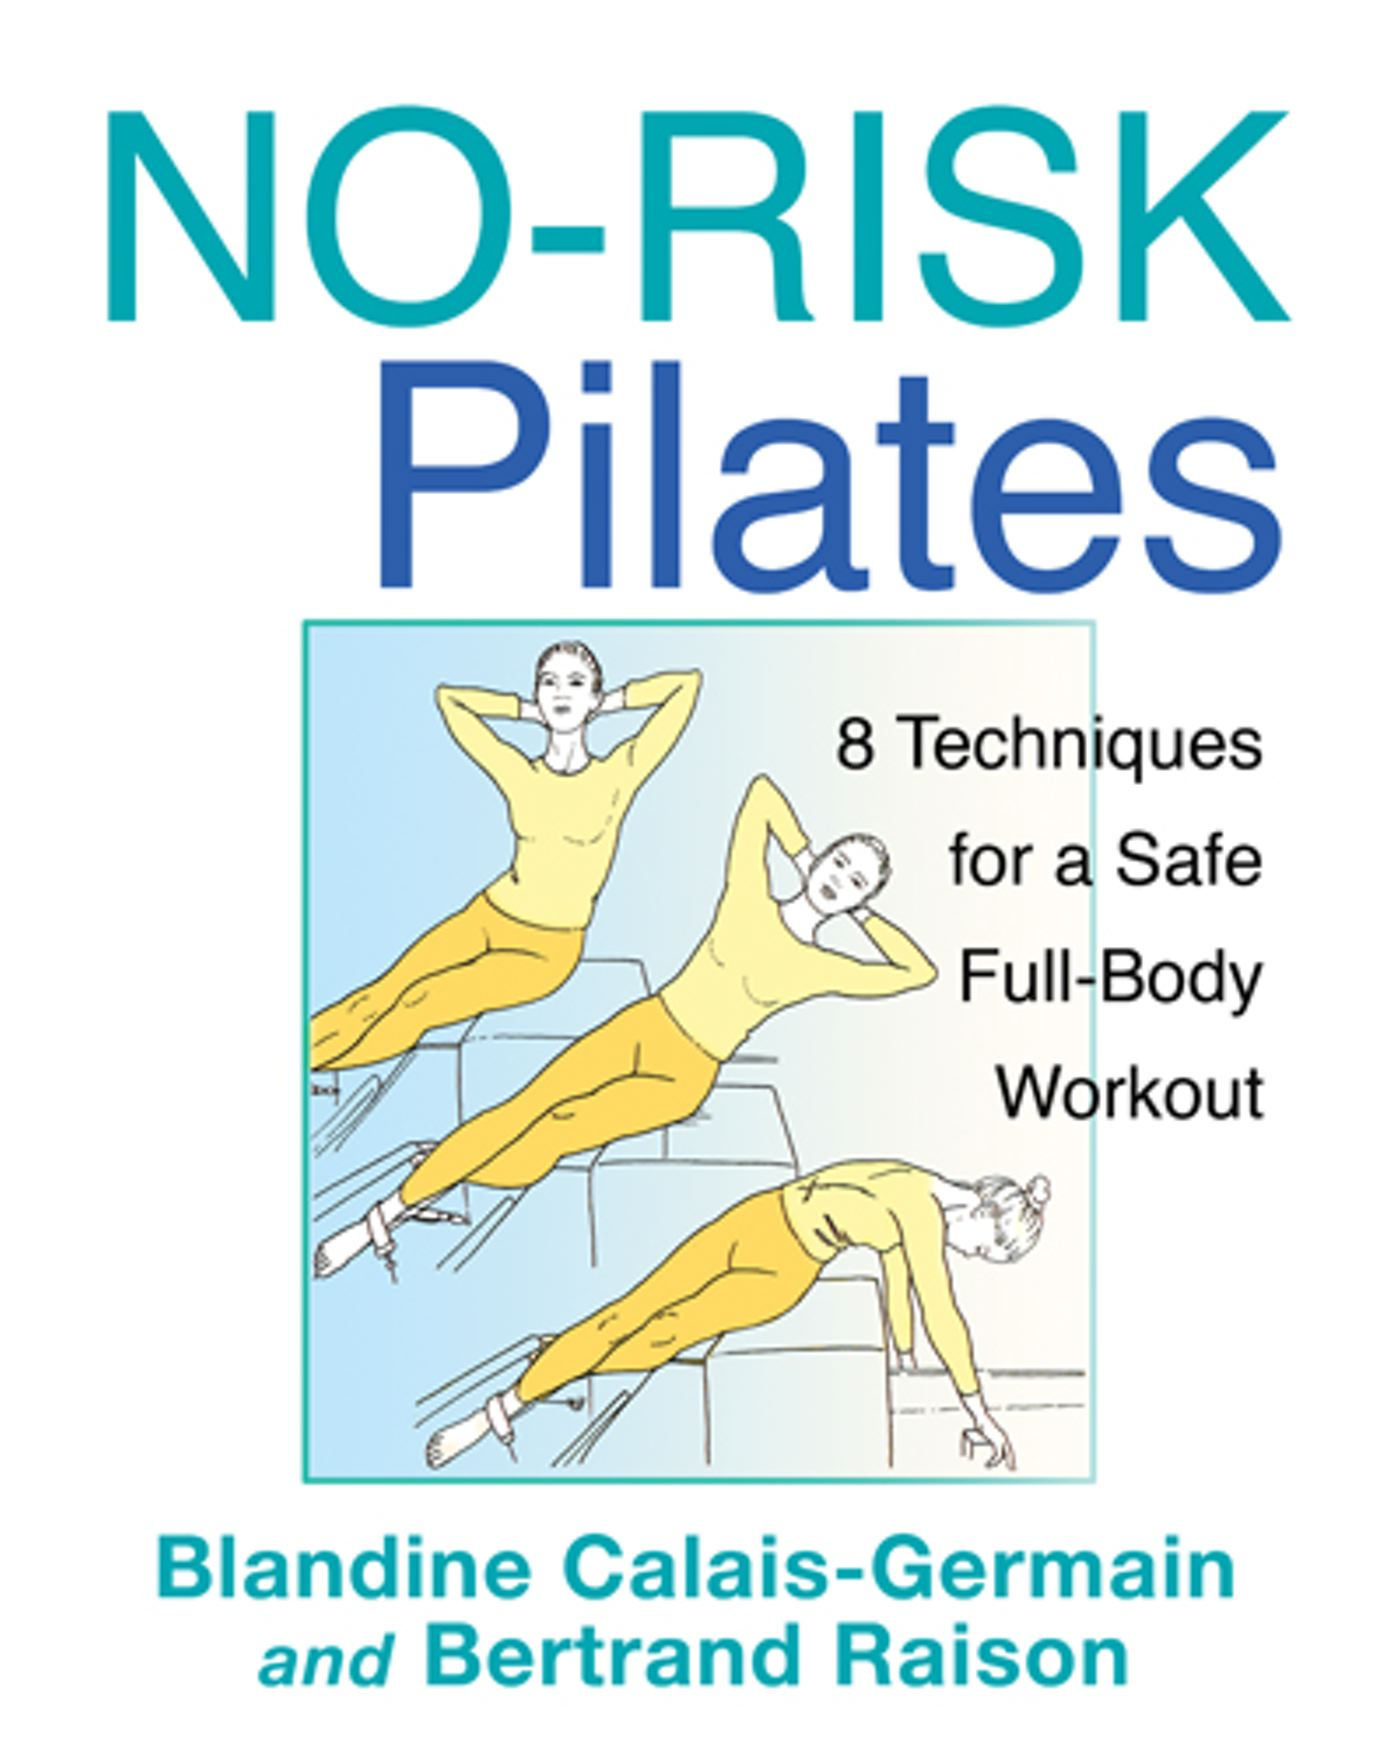 No-risk-pilates-9781594774430_hr